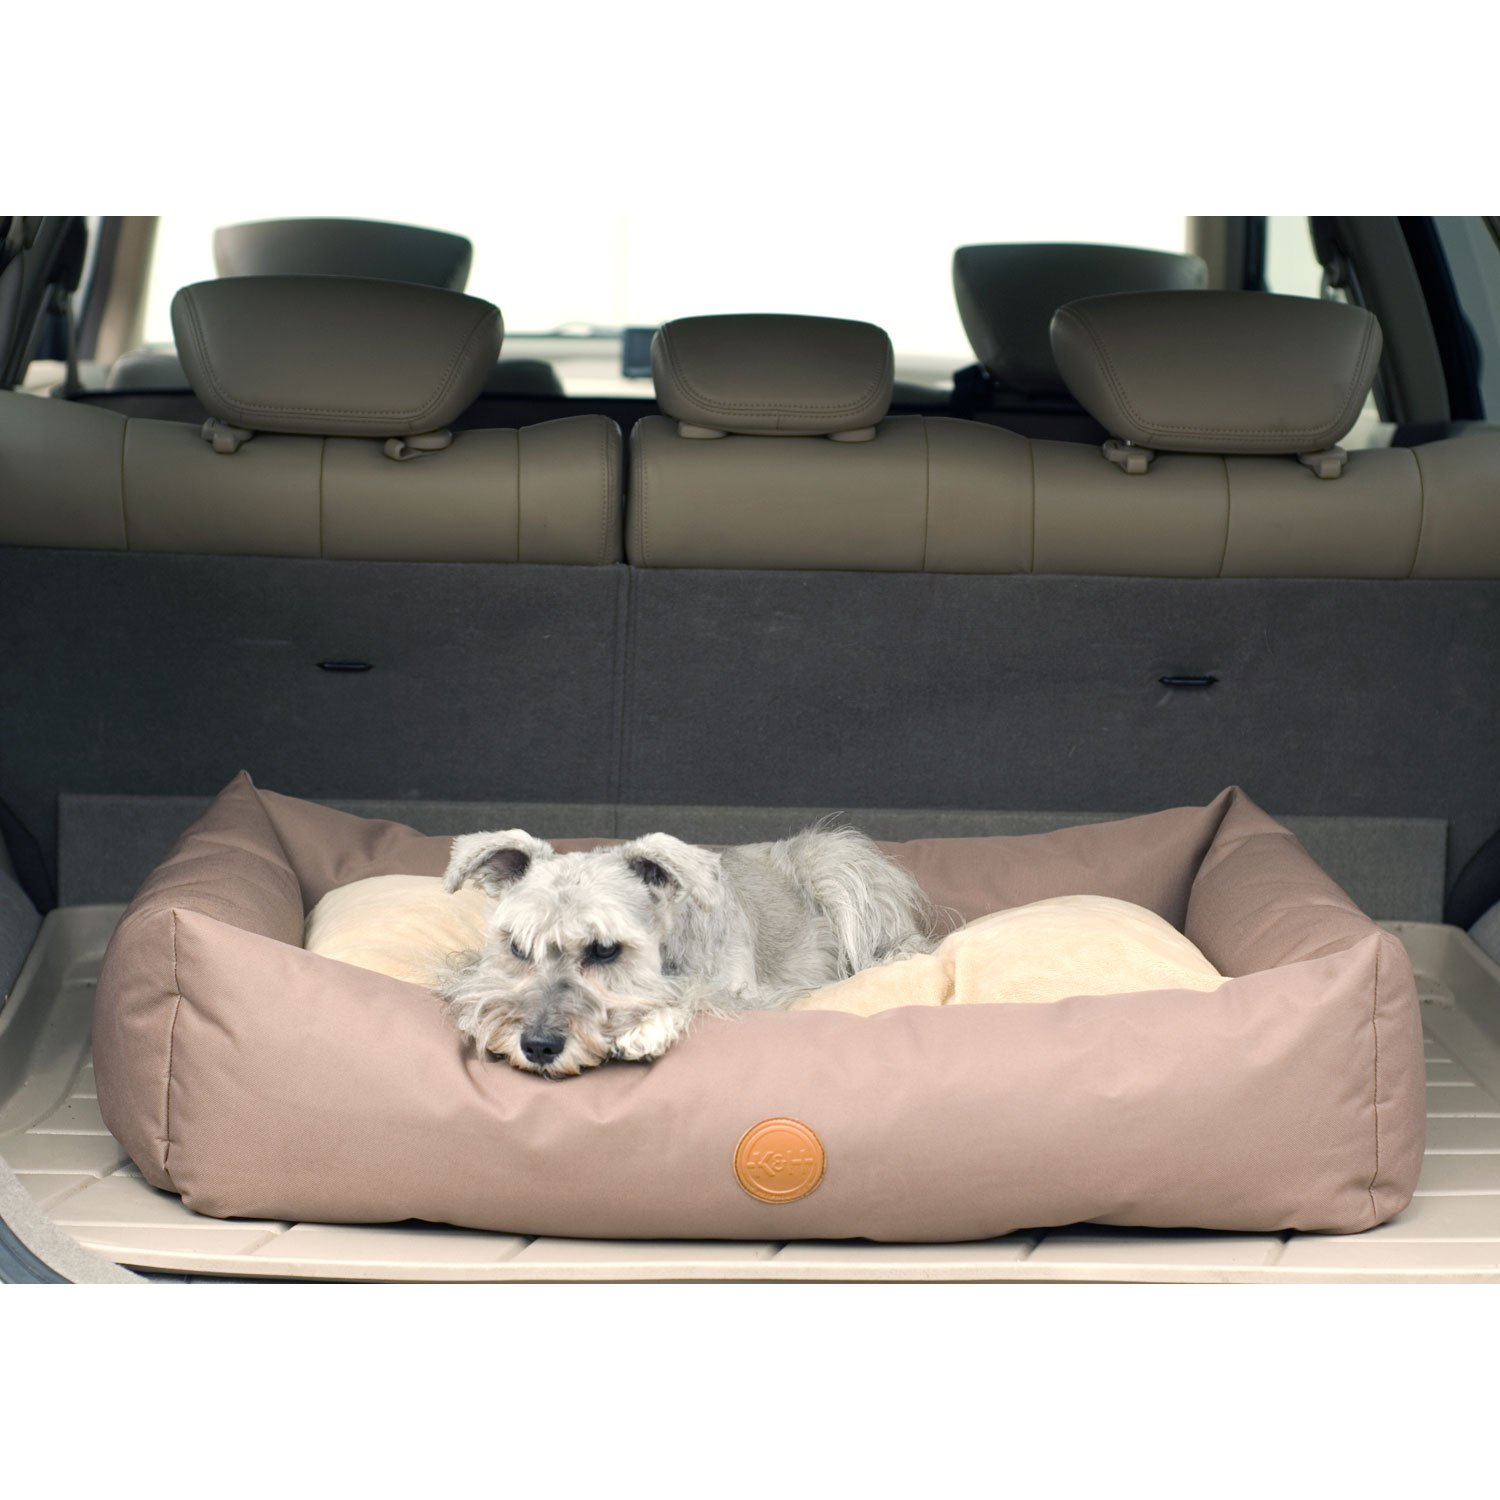 KH Tan Travel  SUV Dog Bed 48 L x 30 W Large